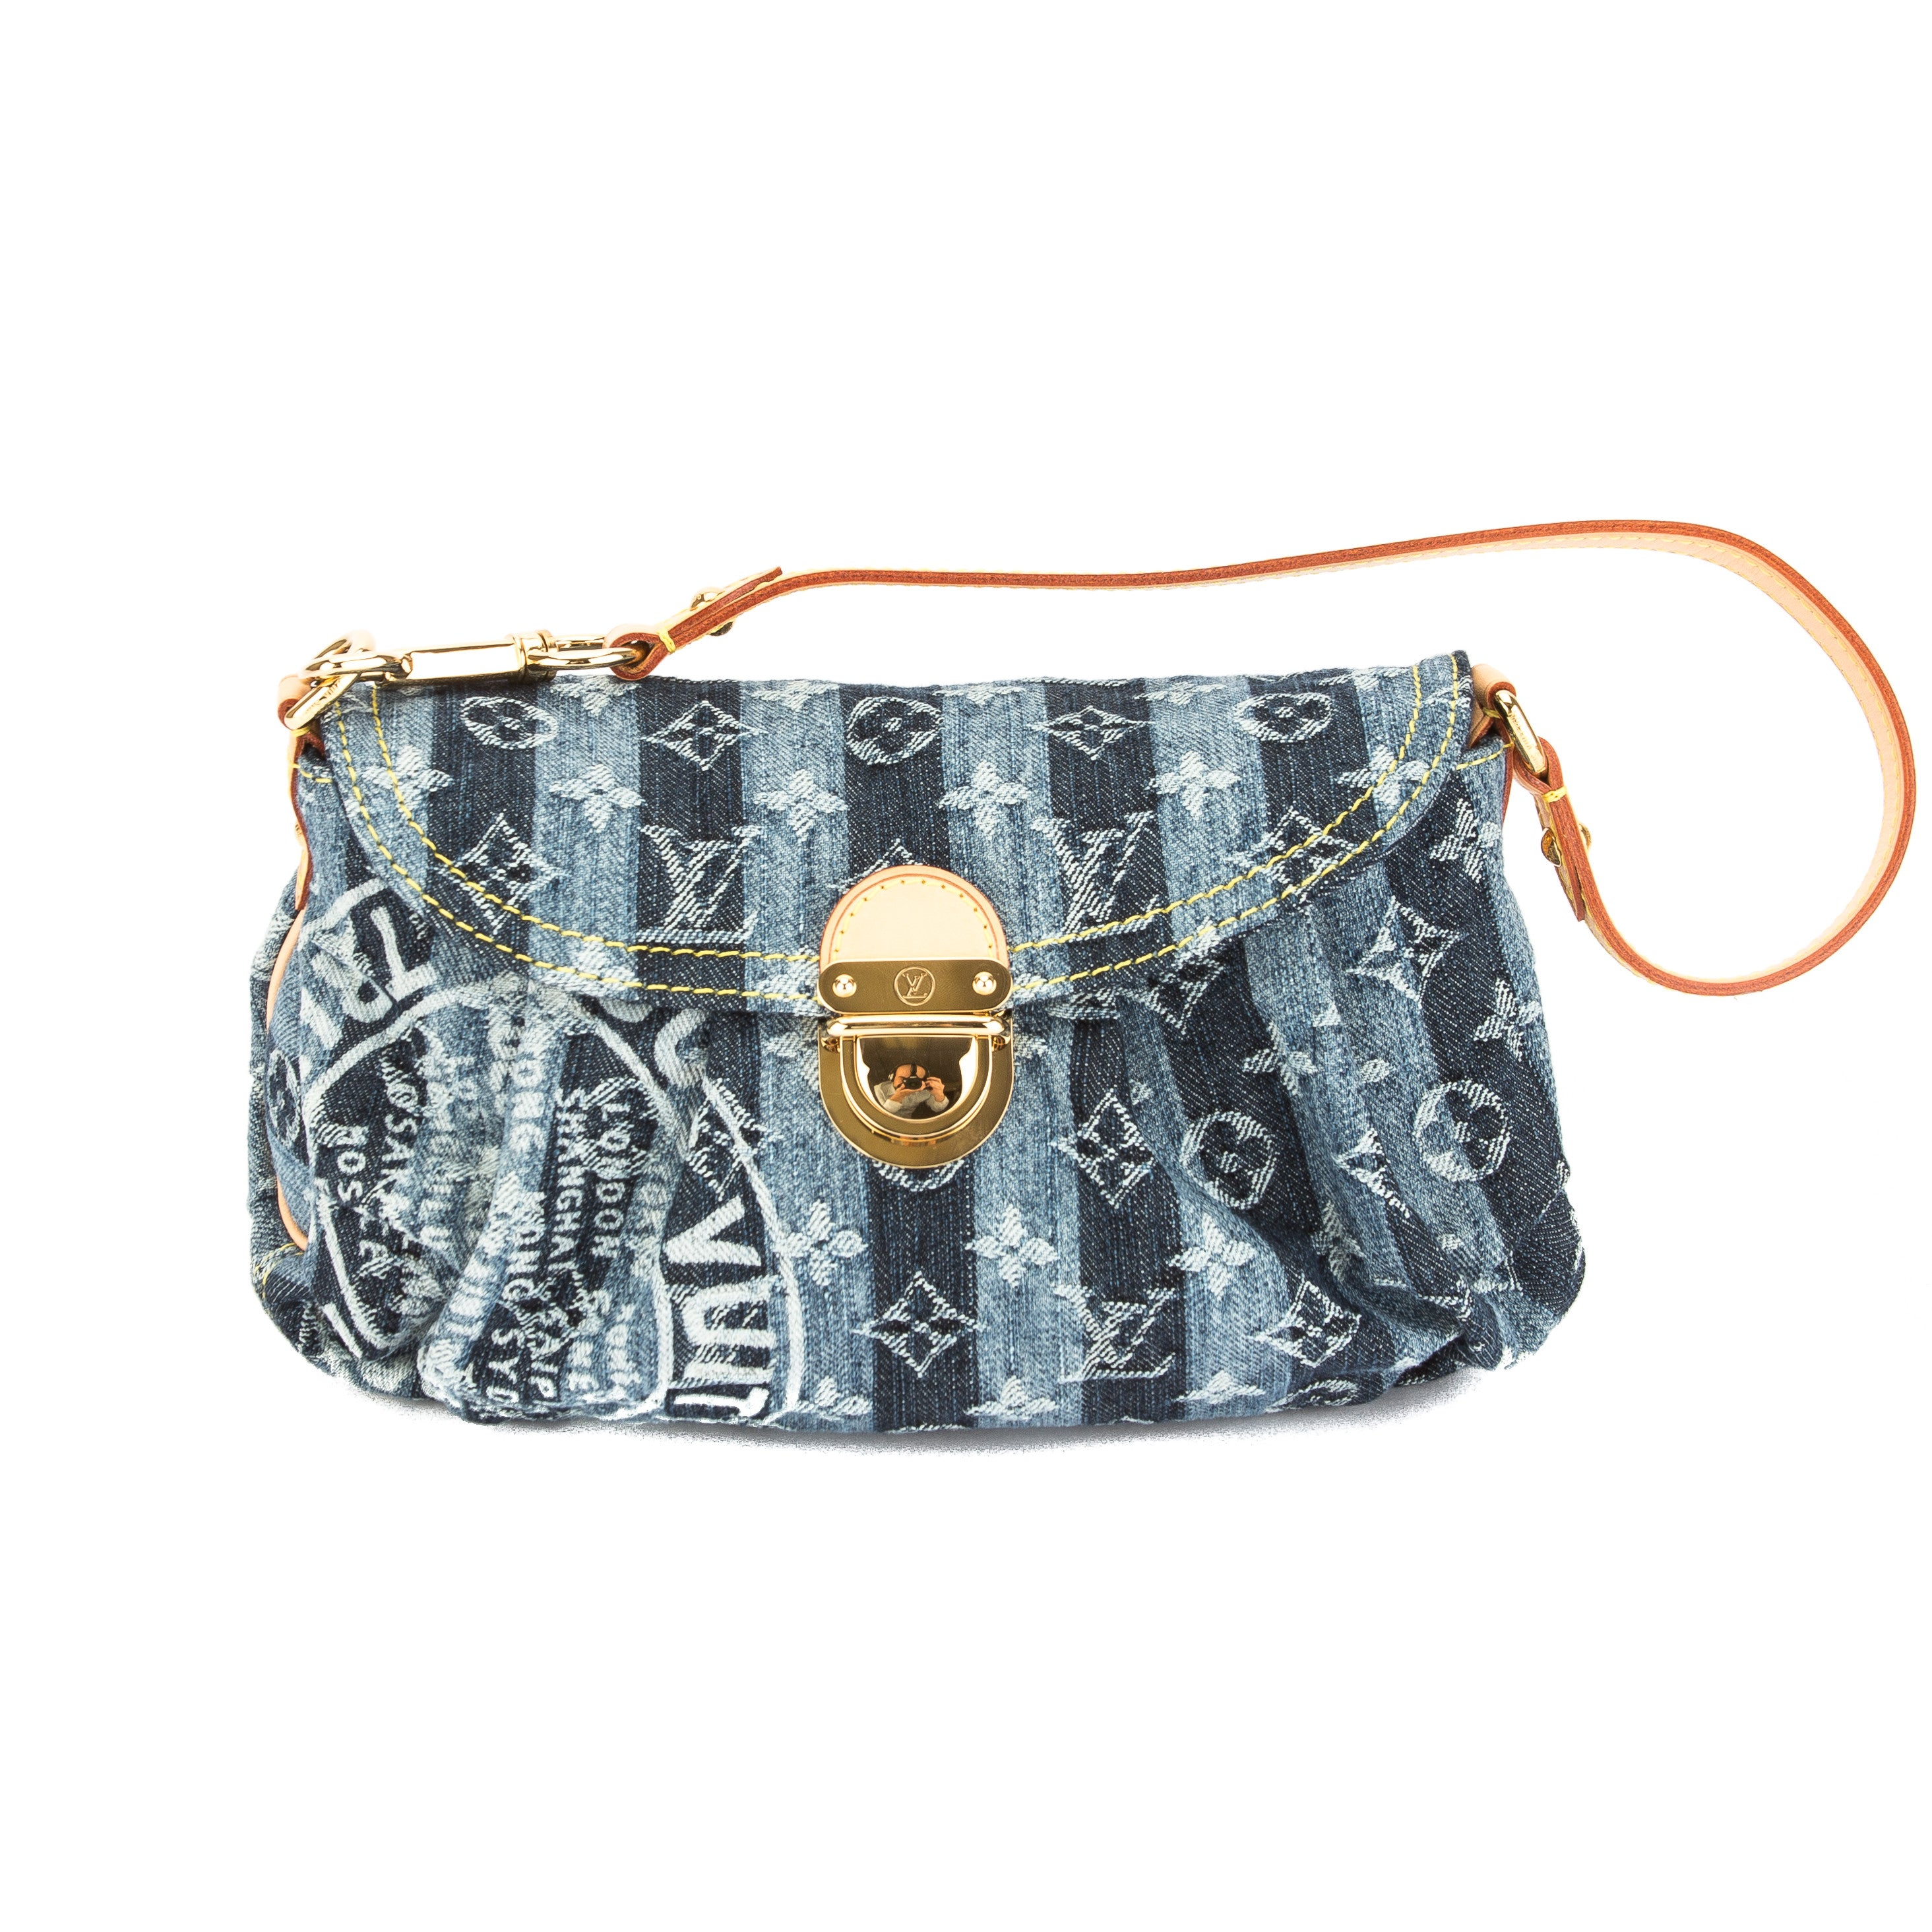 452611f2f4a Louis Vuitton Monogram Blue Denim Canvas Mini Pleaty Raye Bag Pre Owned